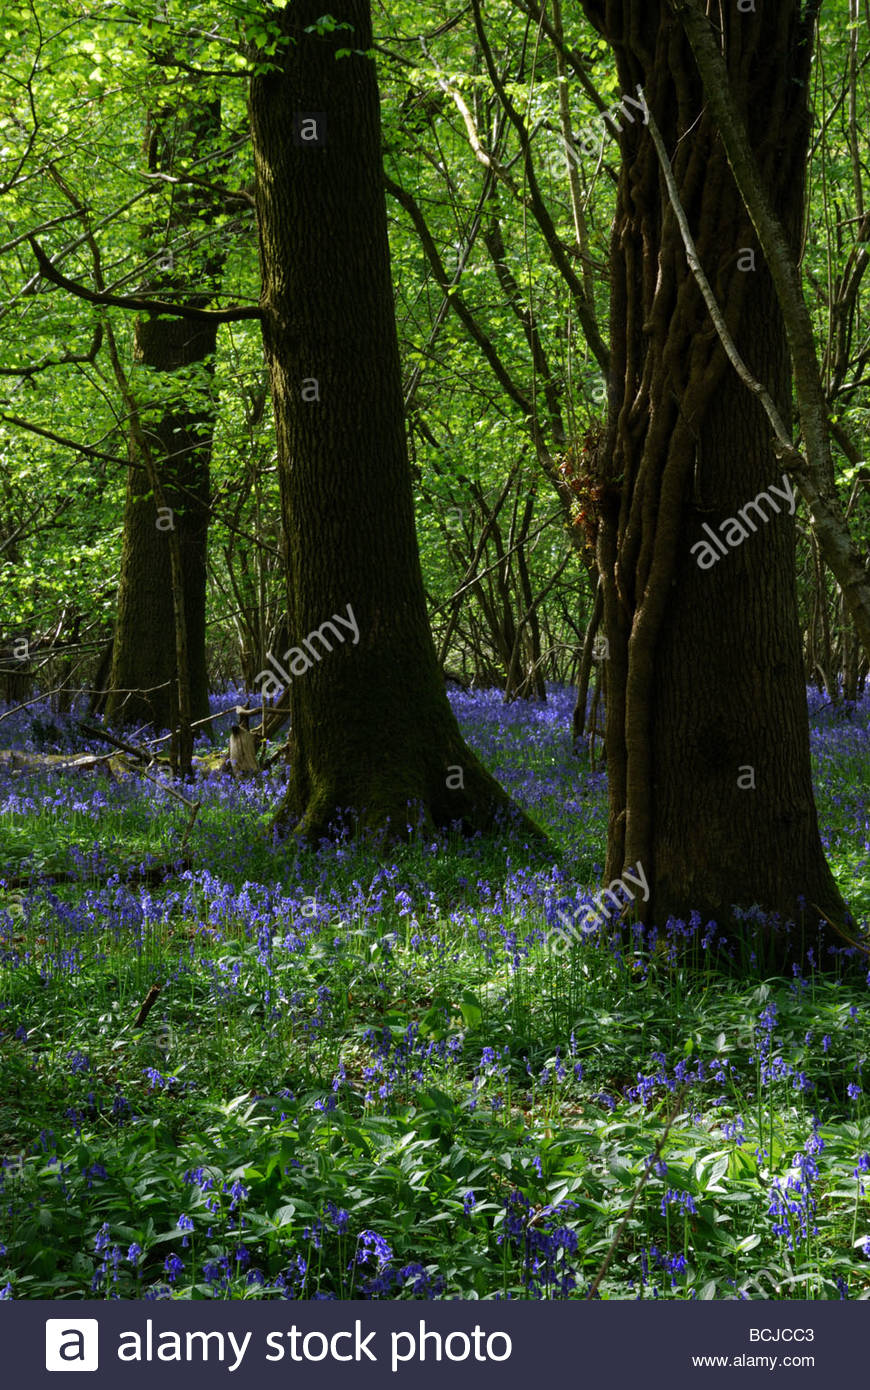 Colourful bluebells in Garston Woods on the border of Dorset and Wiltshire, England, UK - Stock Image